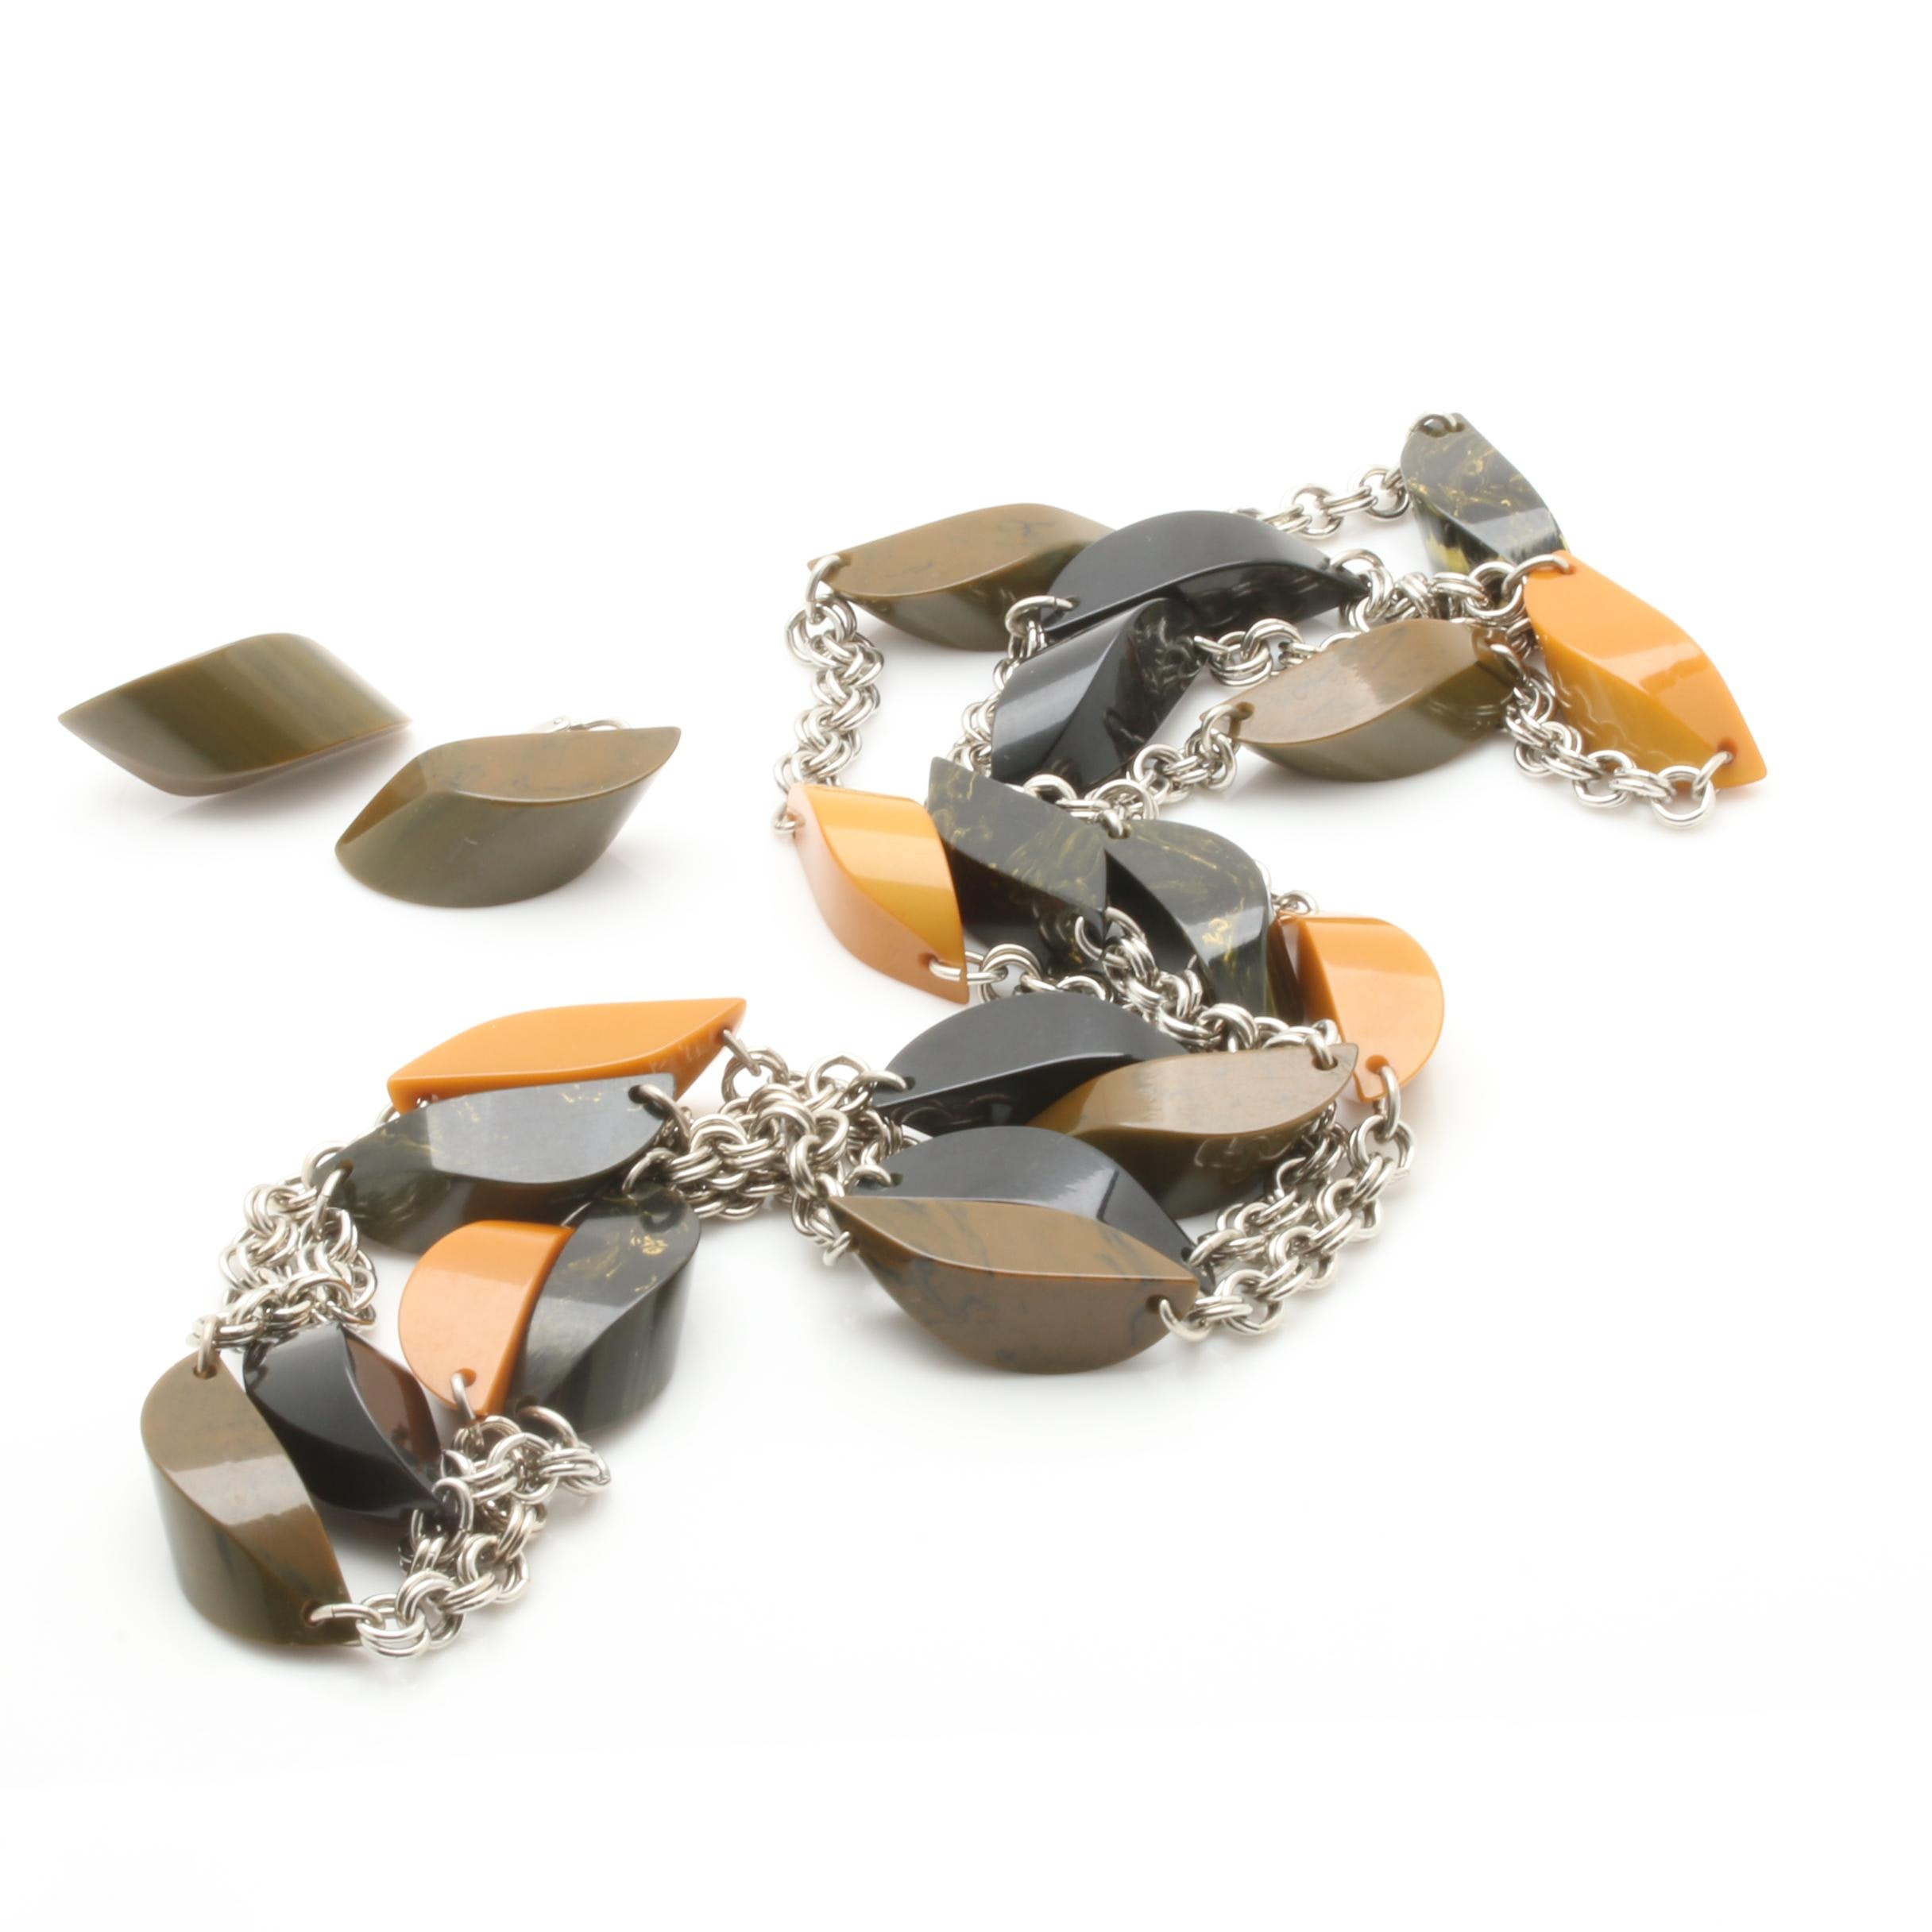 Bakelite Silver Tone Chain Necklace and Earring Set